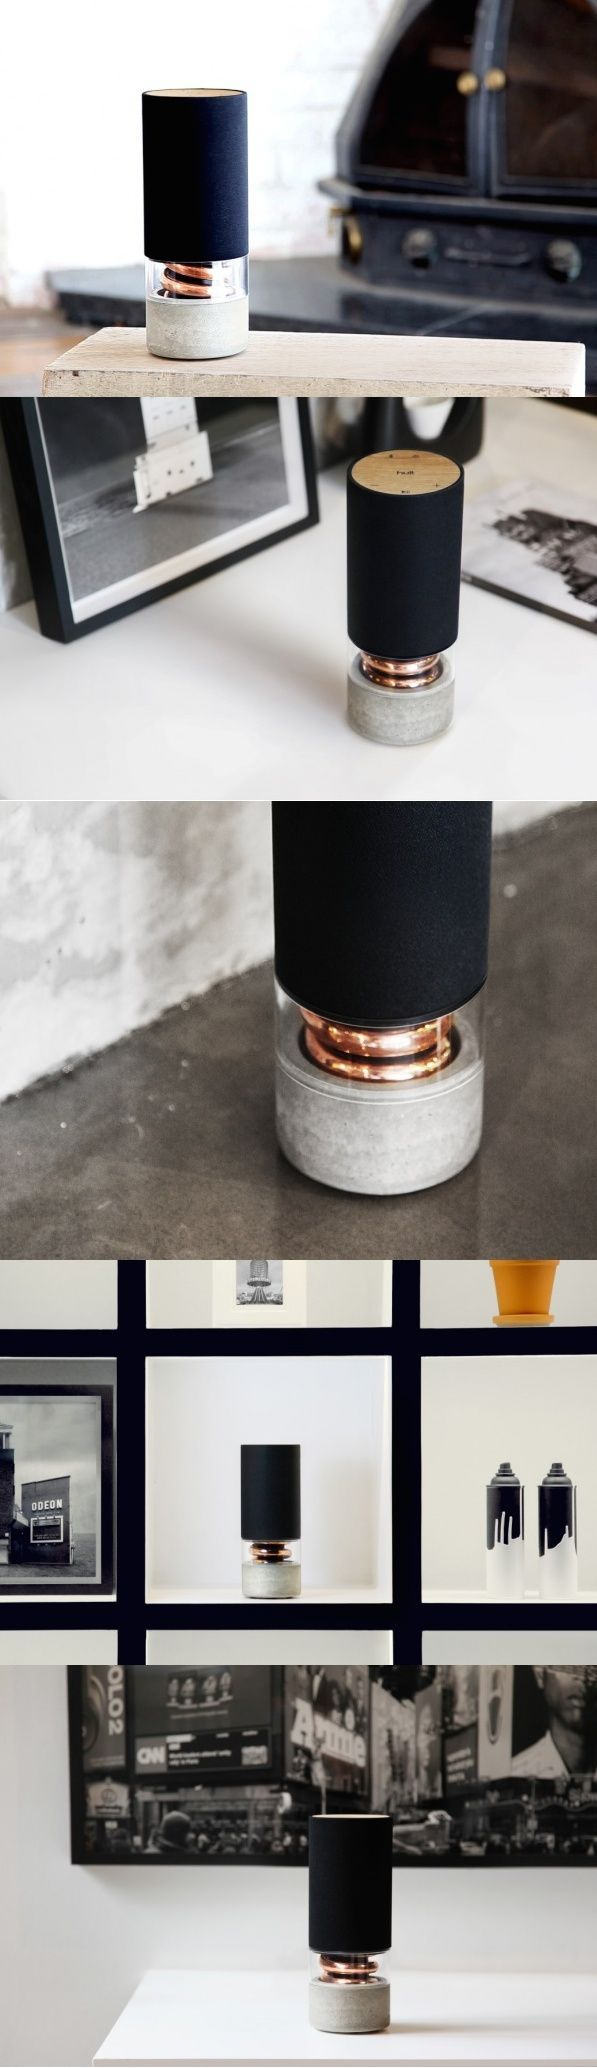 I digress. I can get overly passionate about anything audio, going on, ranting and raving about how awesome it may be. Now when speakers like the Pavilion Wireless Speakers come along, I really can't contain myself. #Speaker #Design #YankoDesign